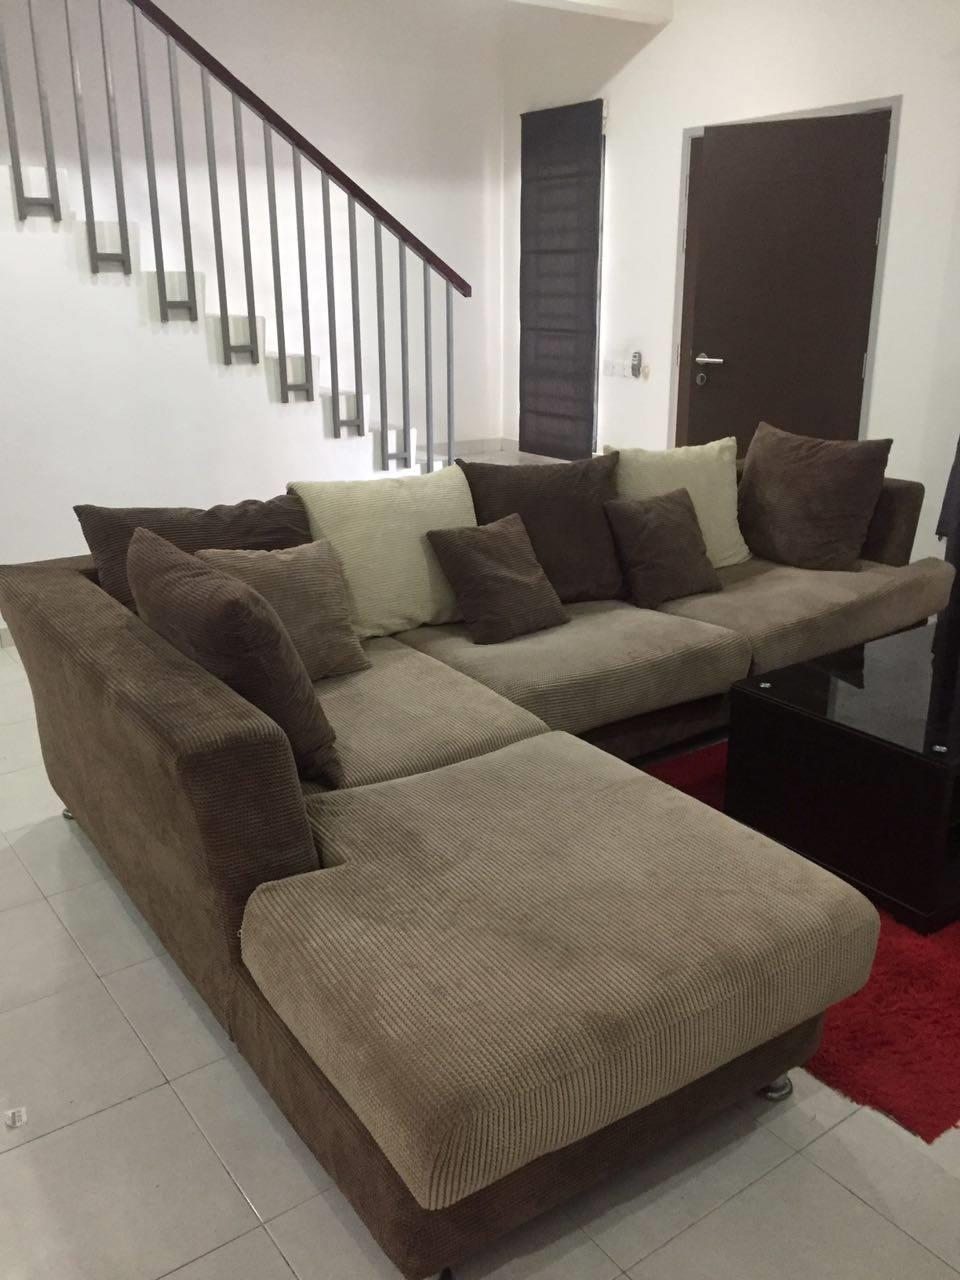 Premium Sofa Set Fabric L Sh End 3 18 2017 12 15 PM MYT